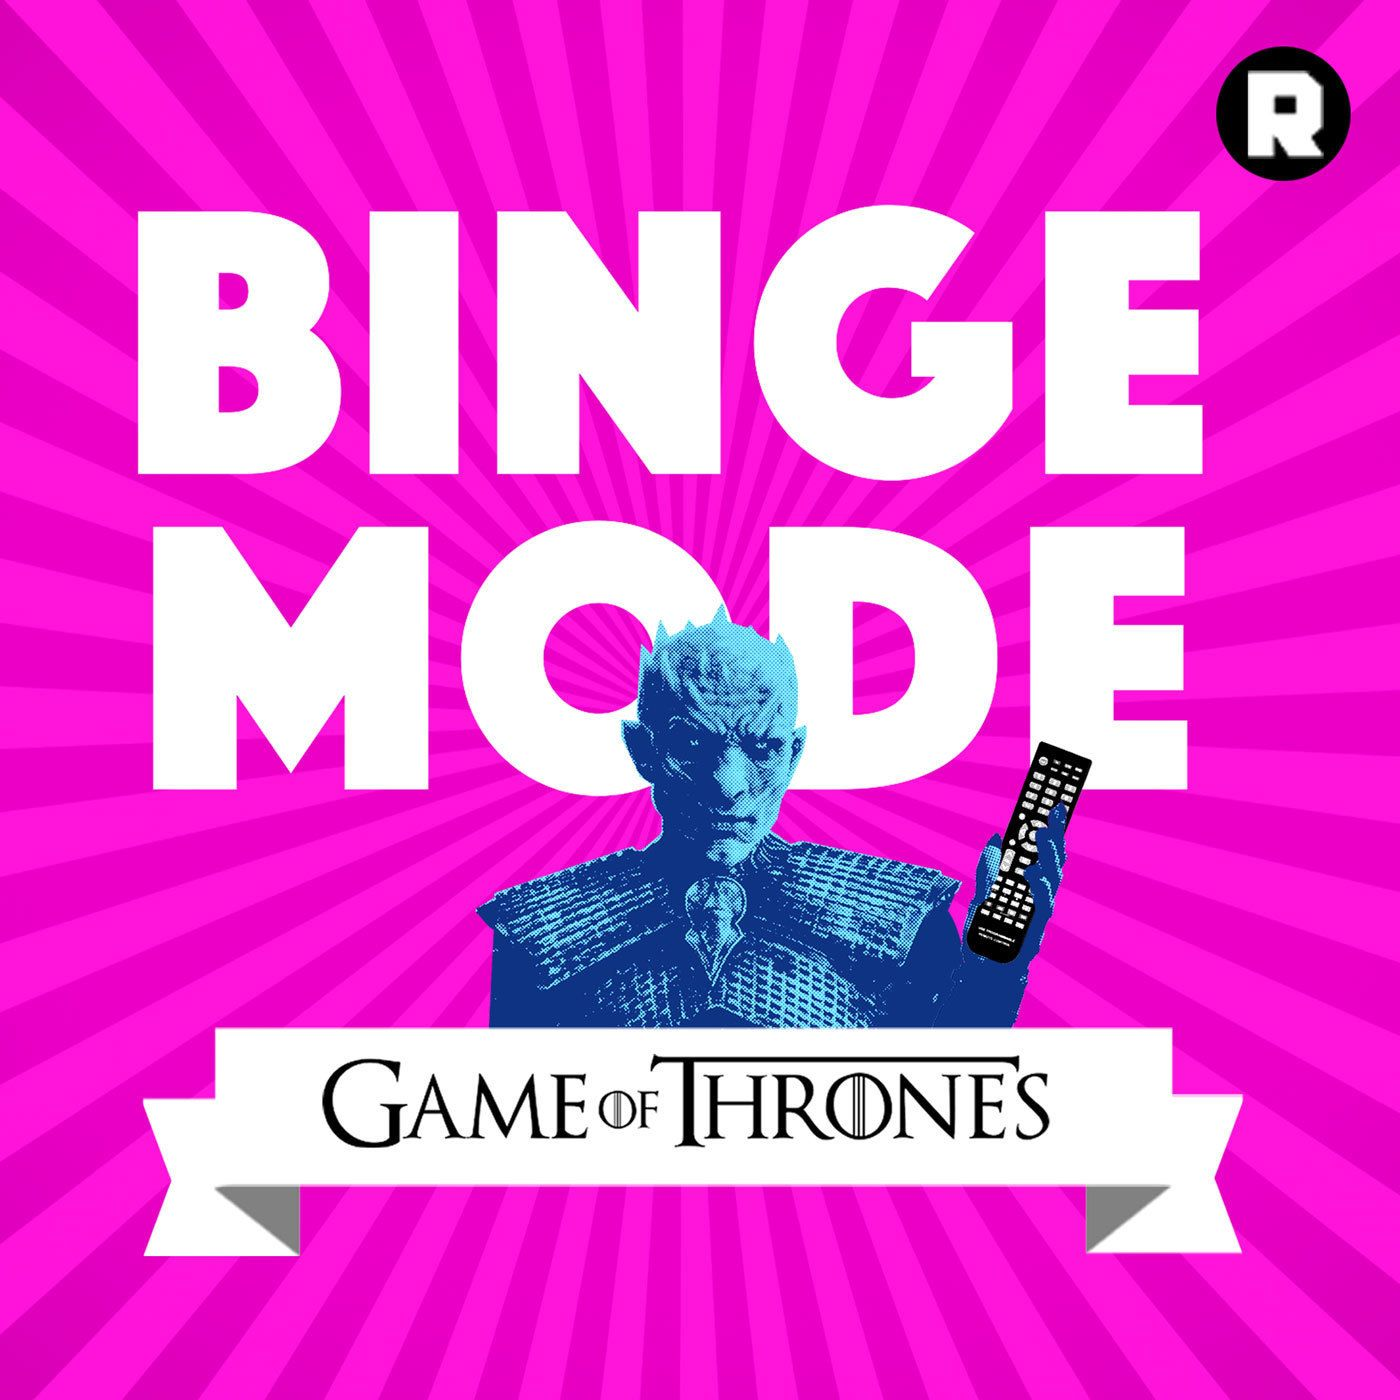 S2E2: The Night Lands | Game of Thrones